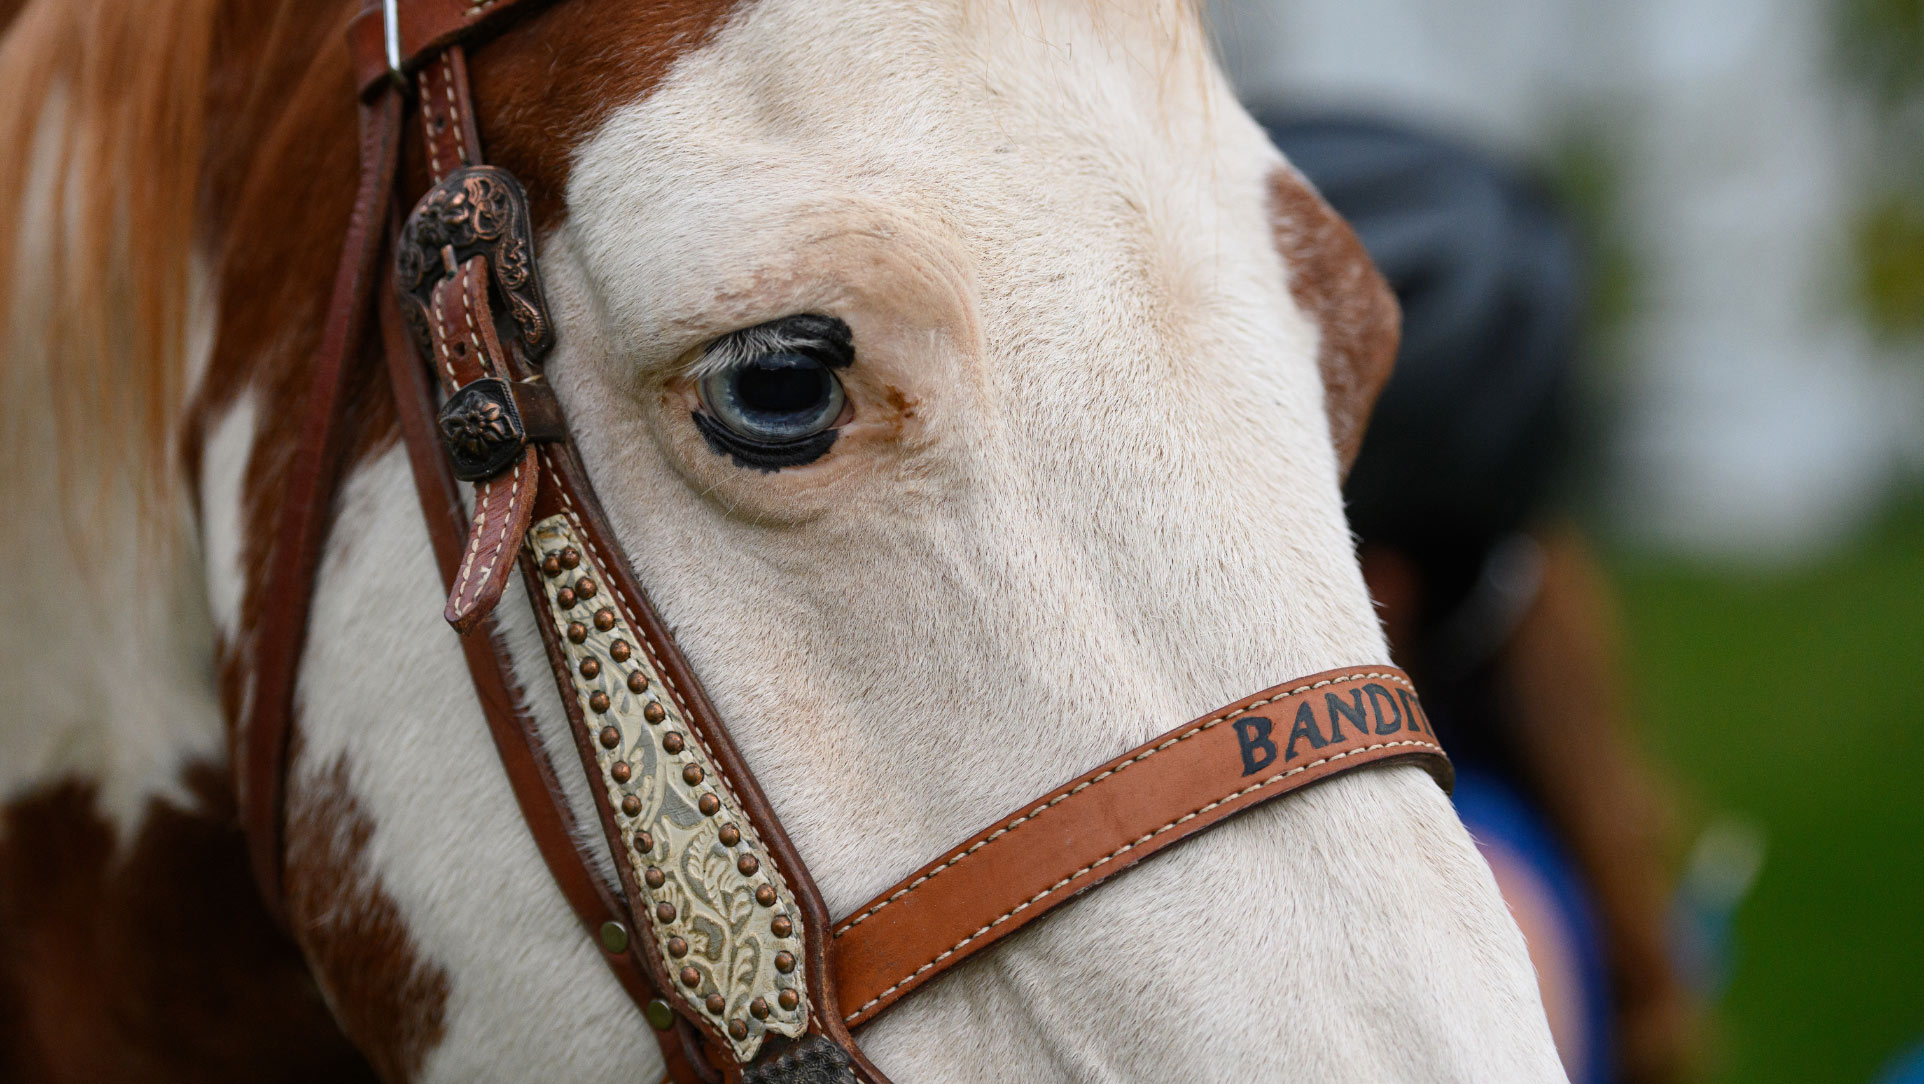 A close-up of Bandit, a white horse with brown splotches.